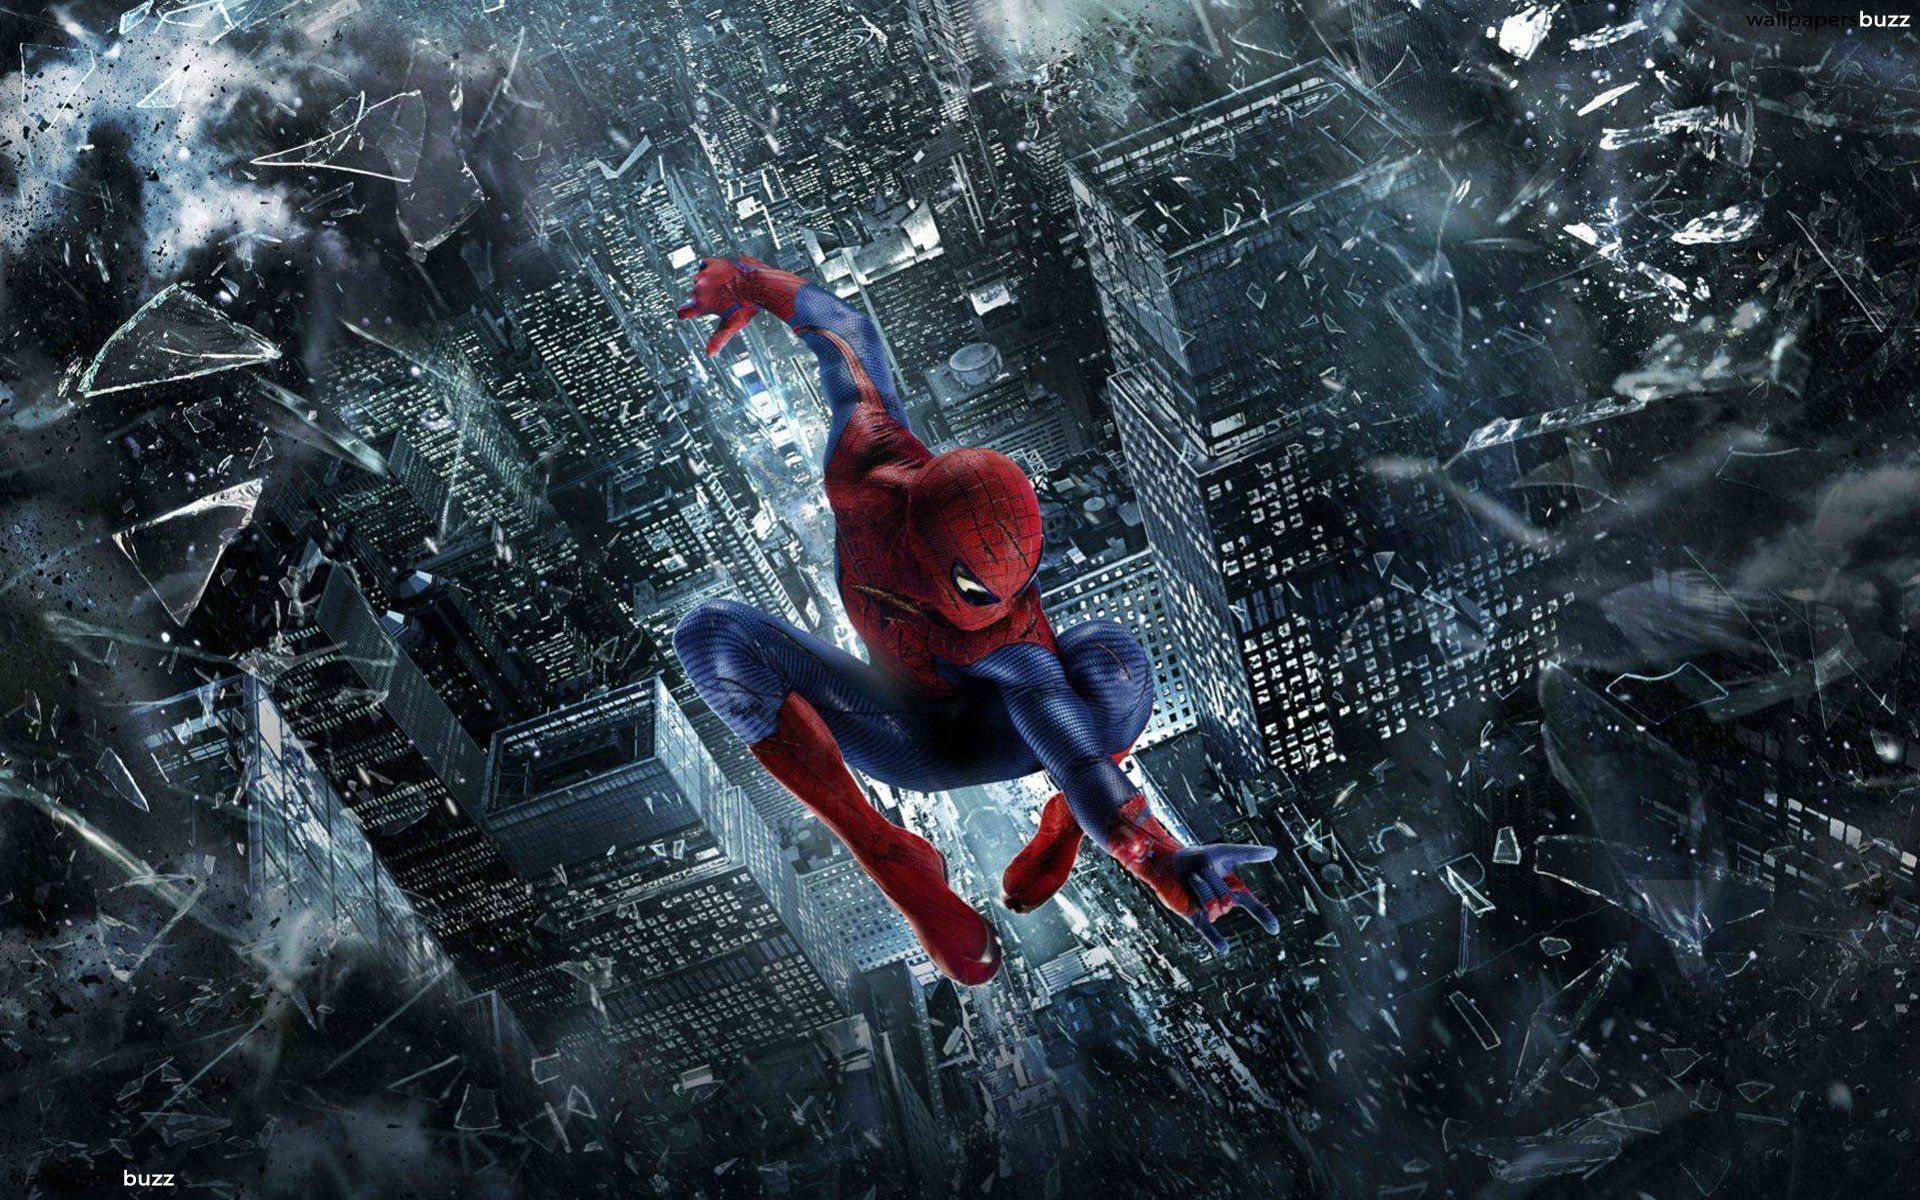 Amazing Wallpaper High Resolution Spiderman - 2ea300f7e27a40b8677ec554f26477e6  Graphic_23787.jpg